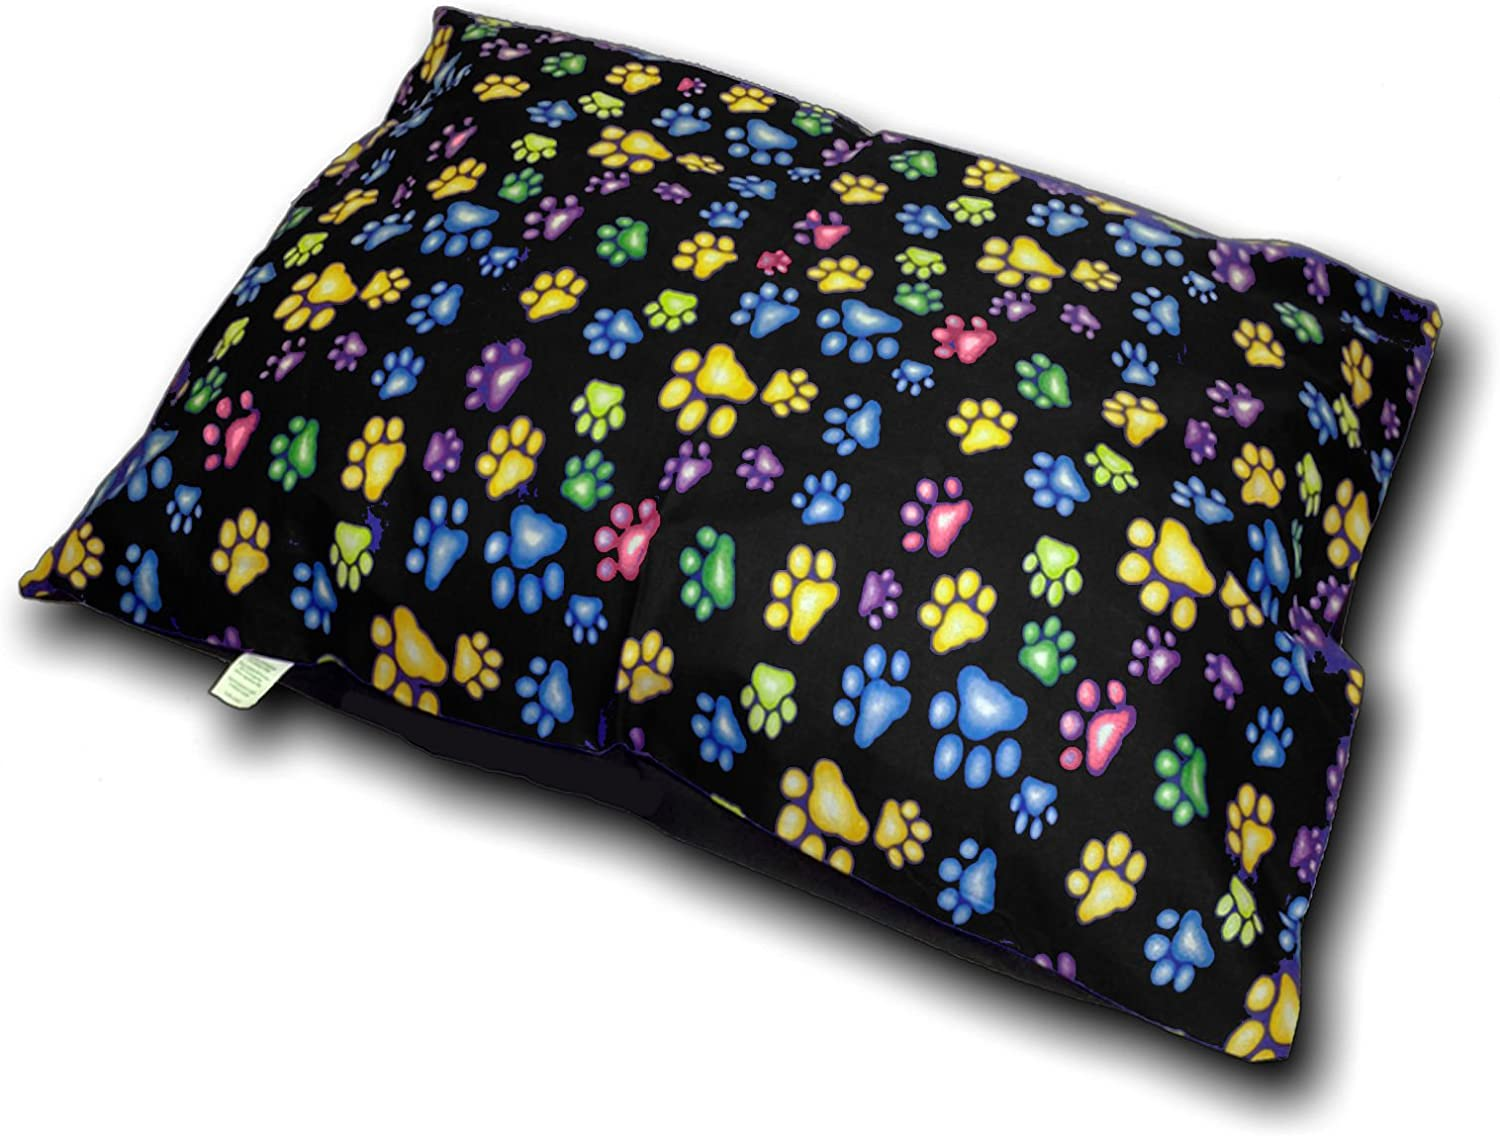 AmigoZone Large and Extra Large Pet Dog Bed Zipped Removable /& Washable Complete Bed Or Cover Only Extra Large Cover + Cushion, Asorted